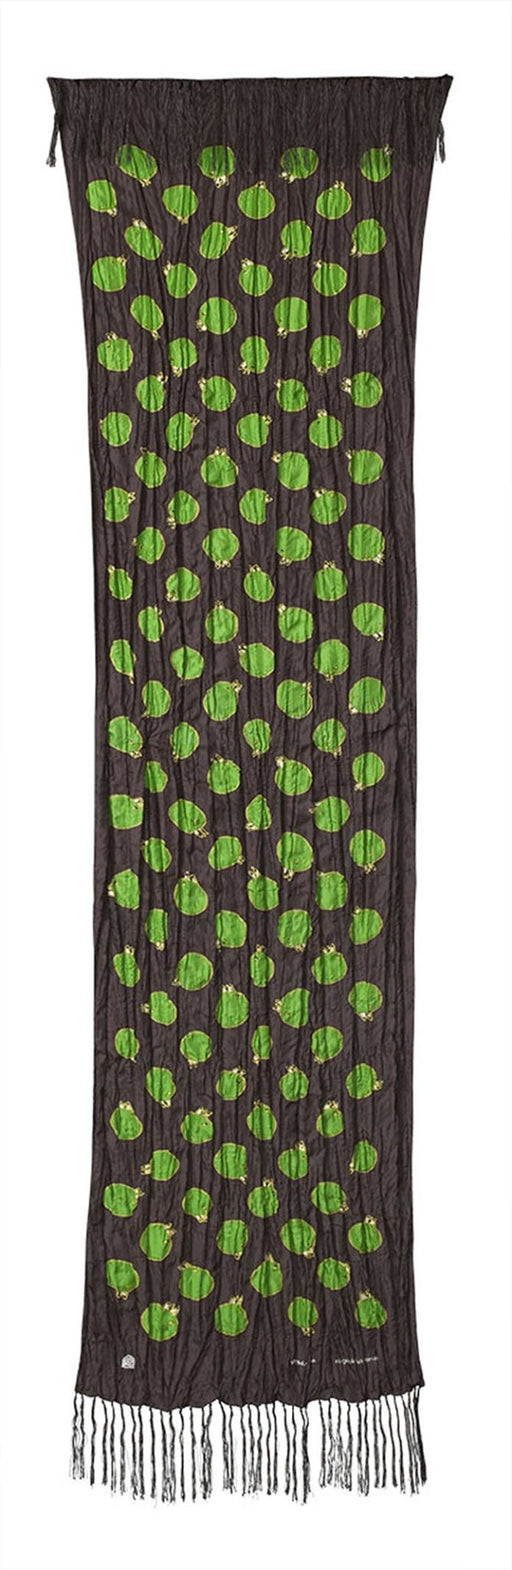 Churring Birds Fringe Scarf (Green/Yellow) - Artfest Ontario - Inunoo - Fringe Scarves